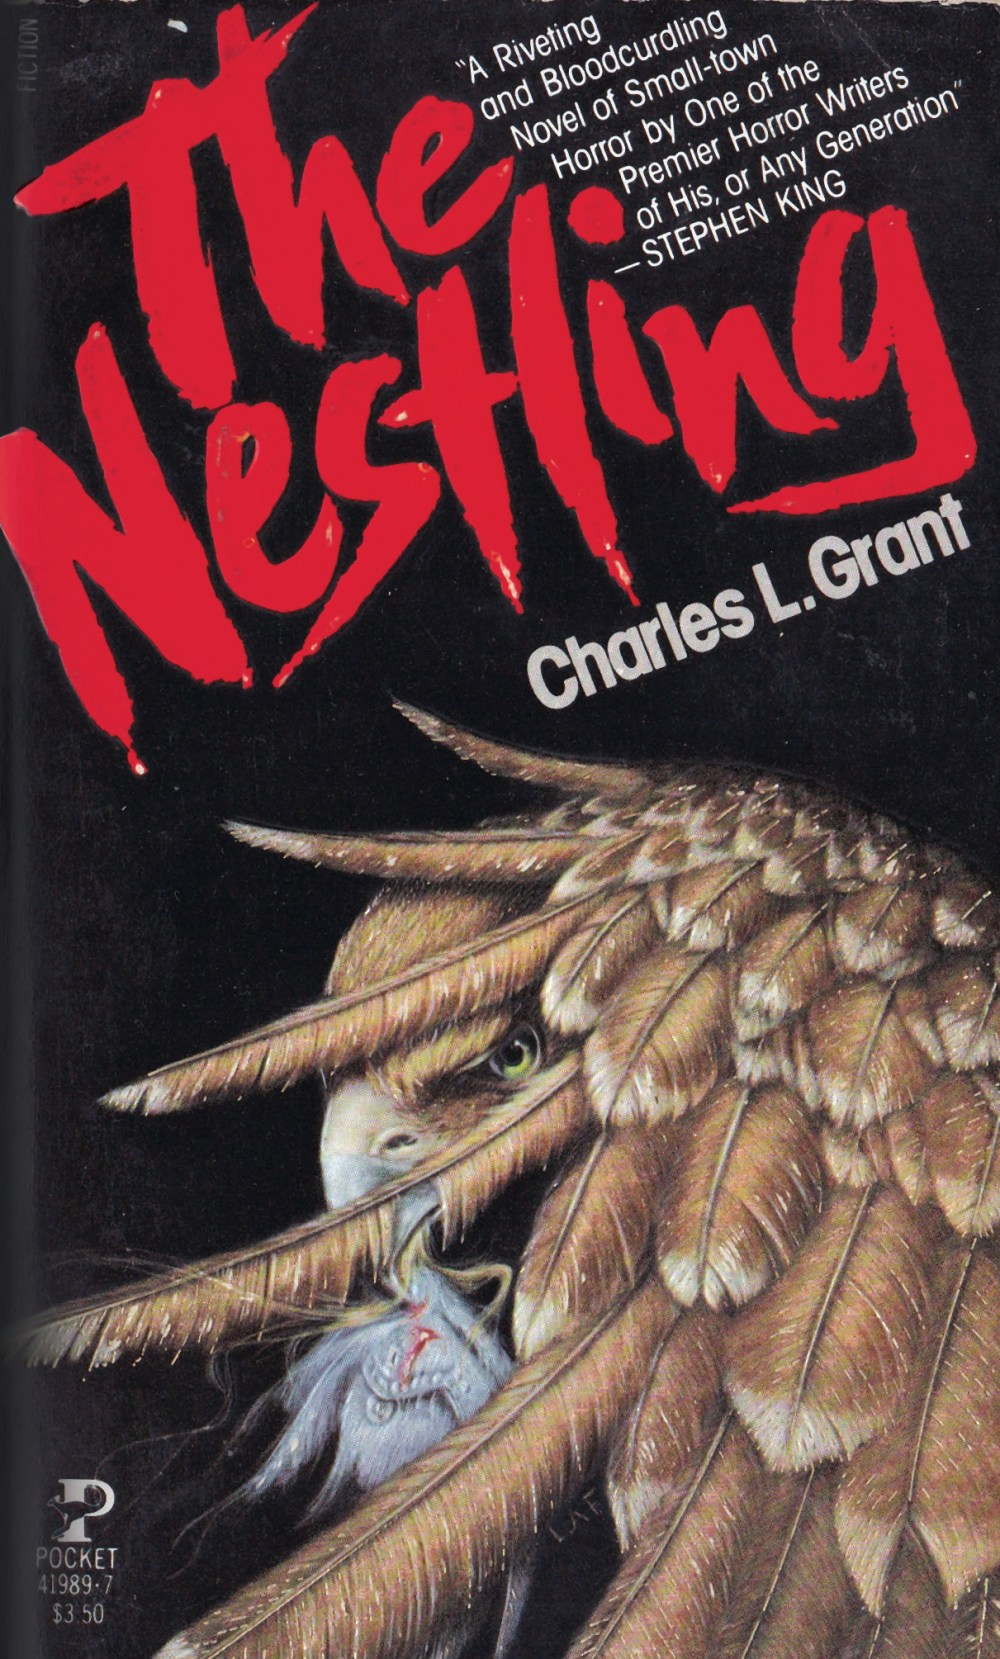 Vintage Horror Books From Hell with Grady Hendrix